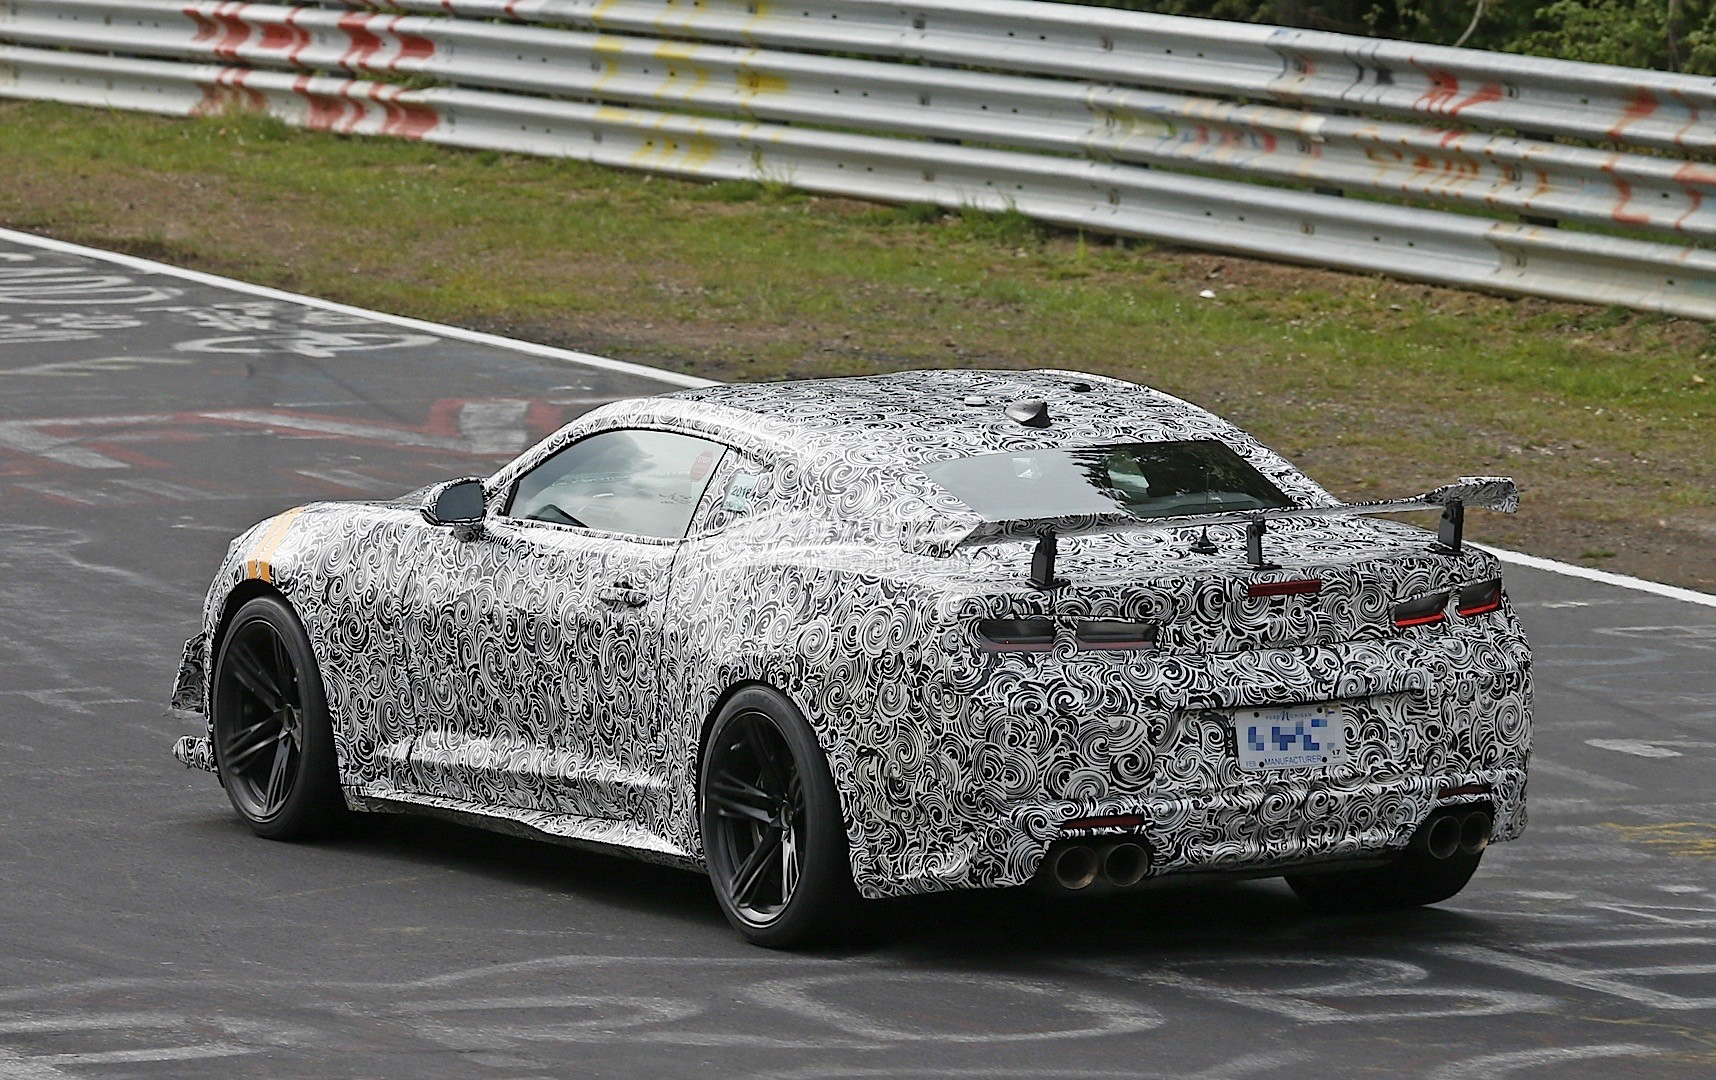 2018 chevrolet camaro z28. plain chevrolet 2018 chevrolet camaro z28 spied on the nurburgring and chevrolet camaro z28 8